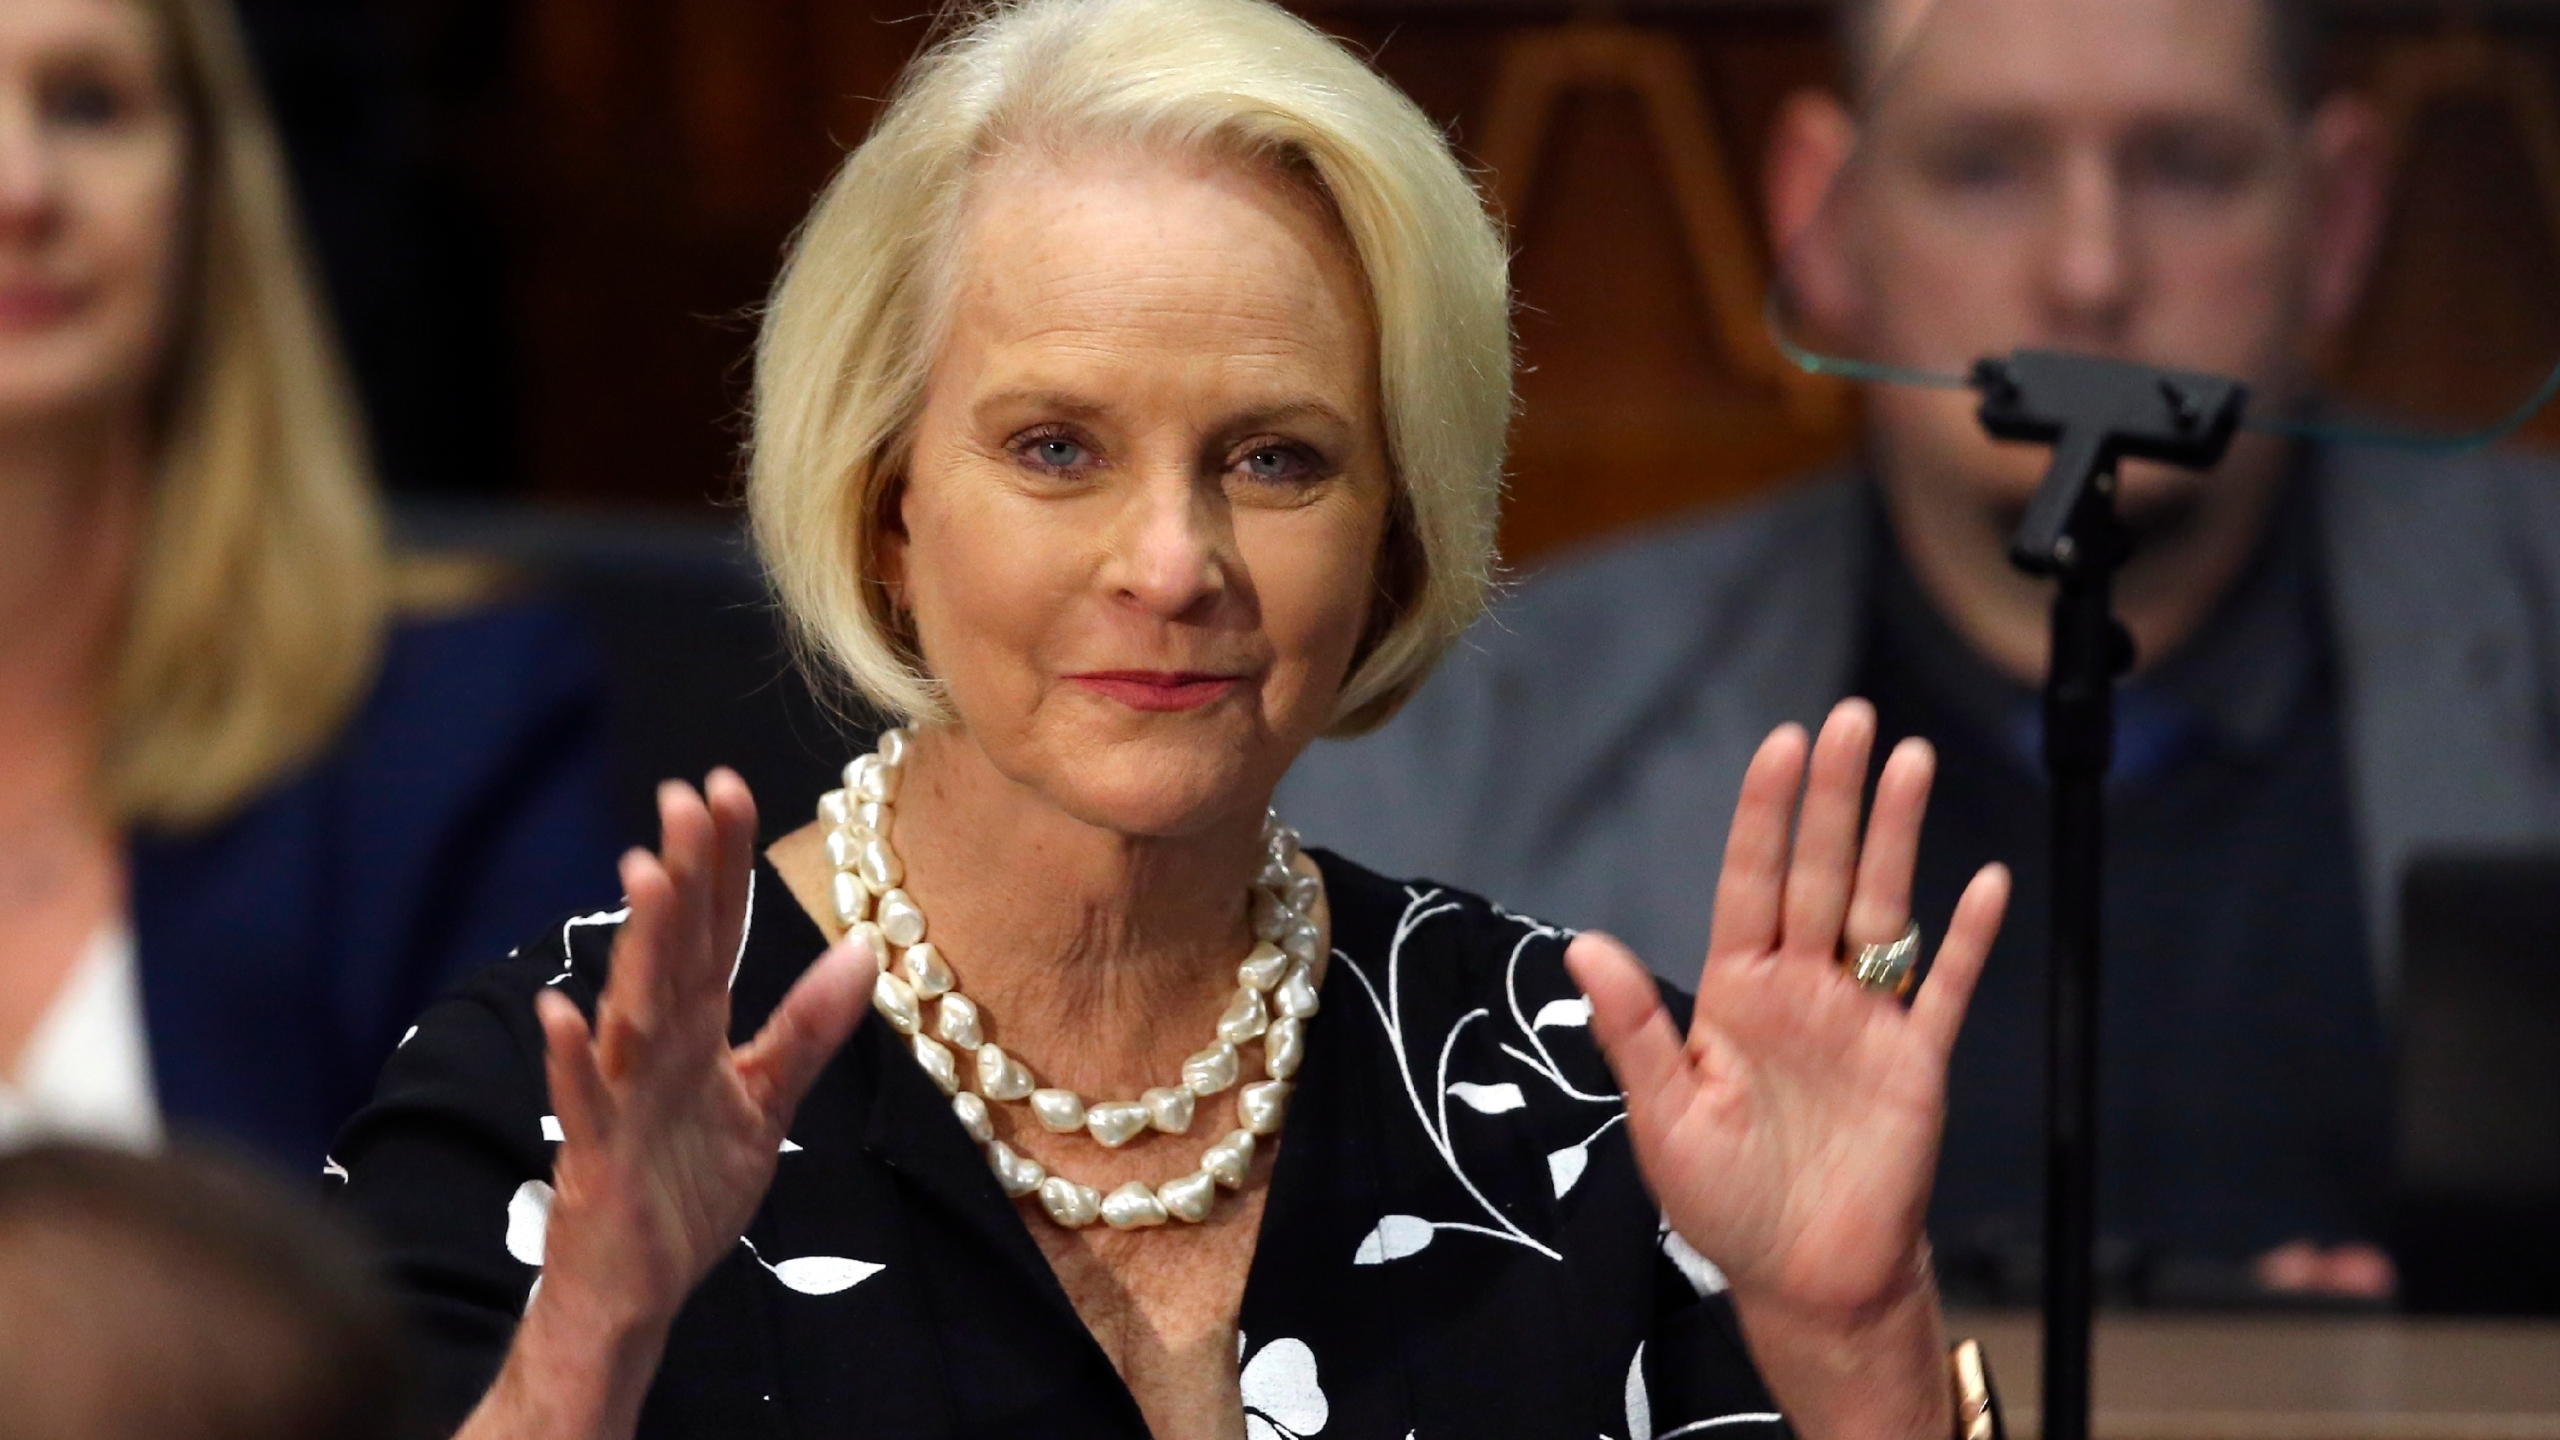 In this Jan. 13, 2020, file photo Cindy McCain, wife of former Arizona Sen. John McCain, waves to the crowd after being acknowledged by Arizona Republican Gov. Doug Ducey during his State of the State address on the opening day of the legislative session at the Capitol in Phoenix. (AP Photo/Ross D. Franklin)